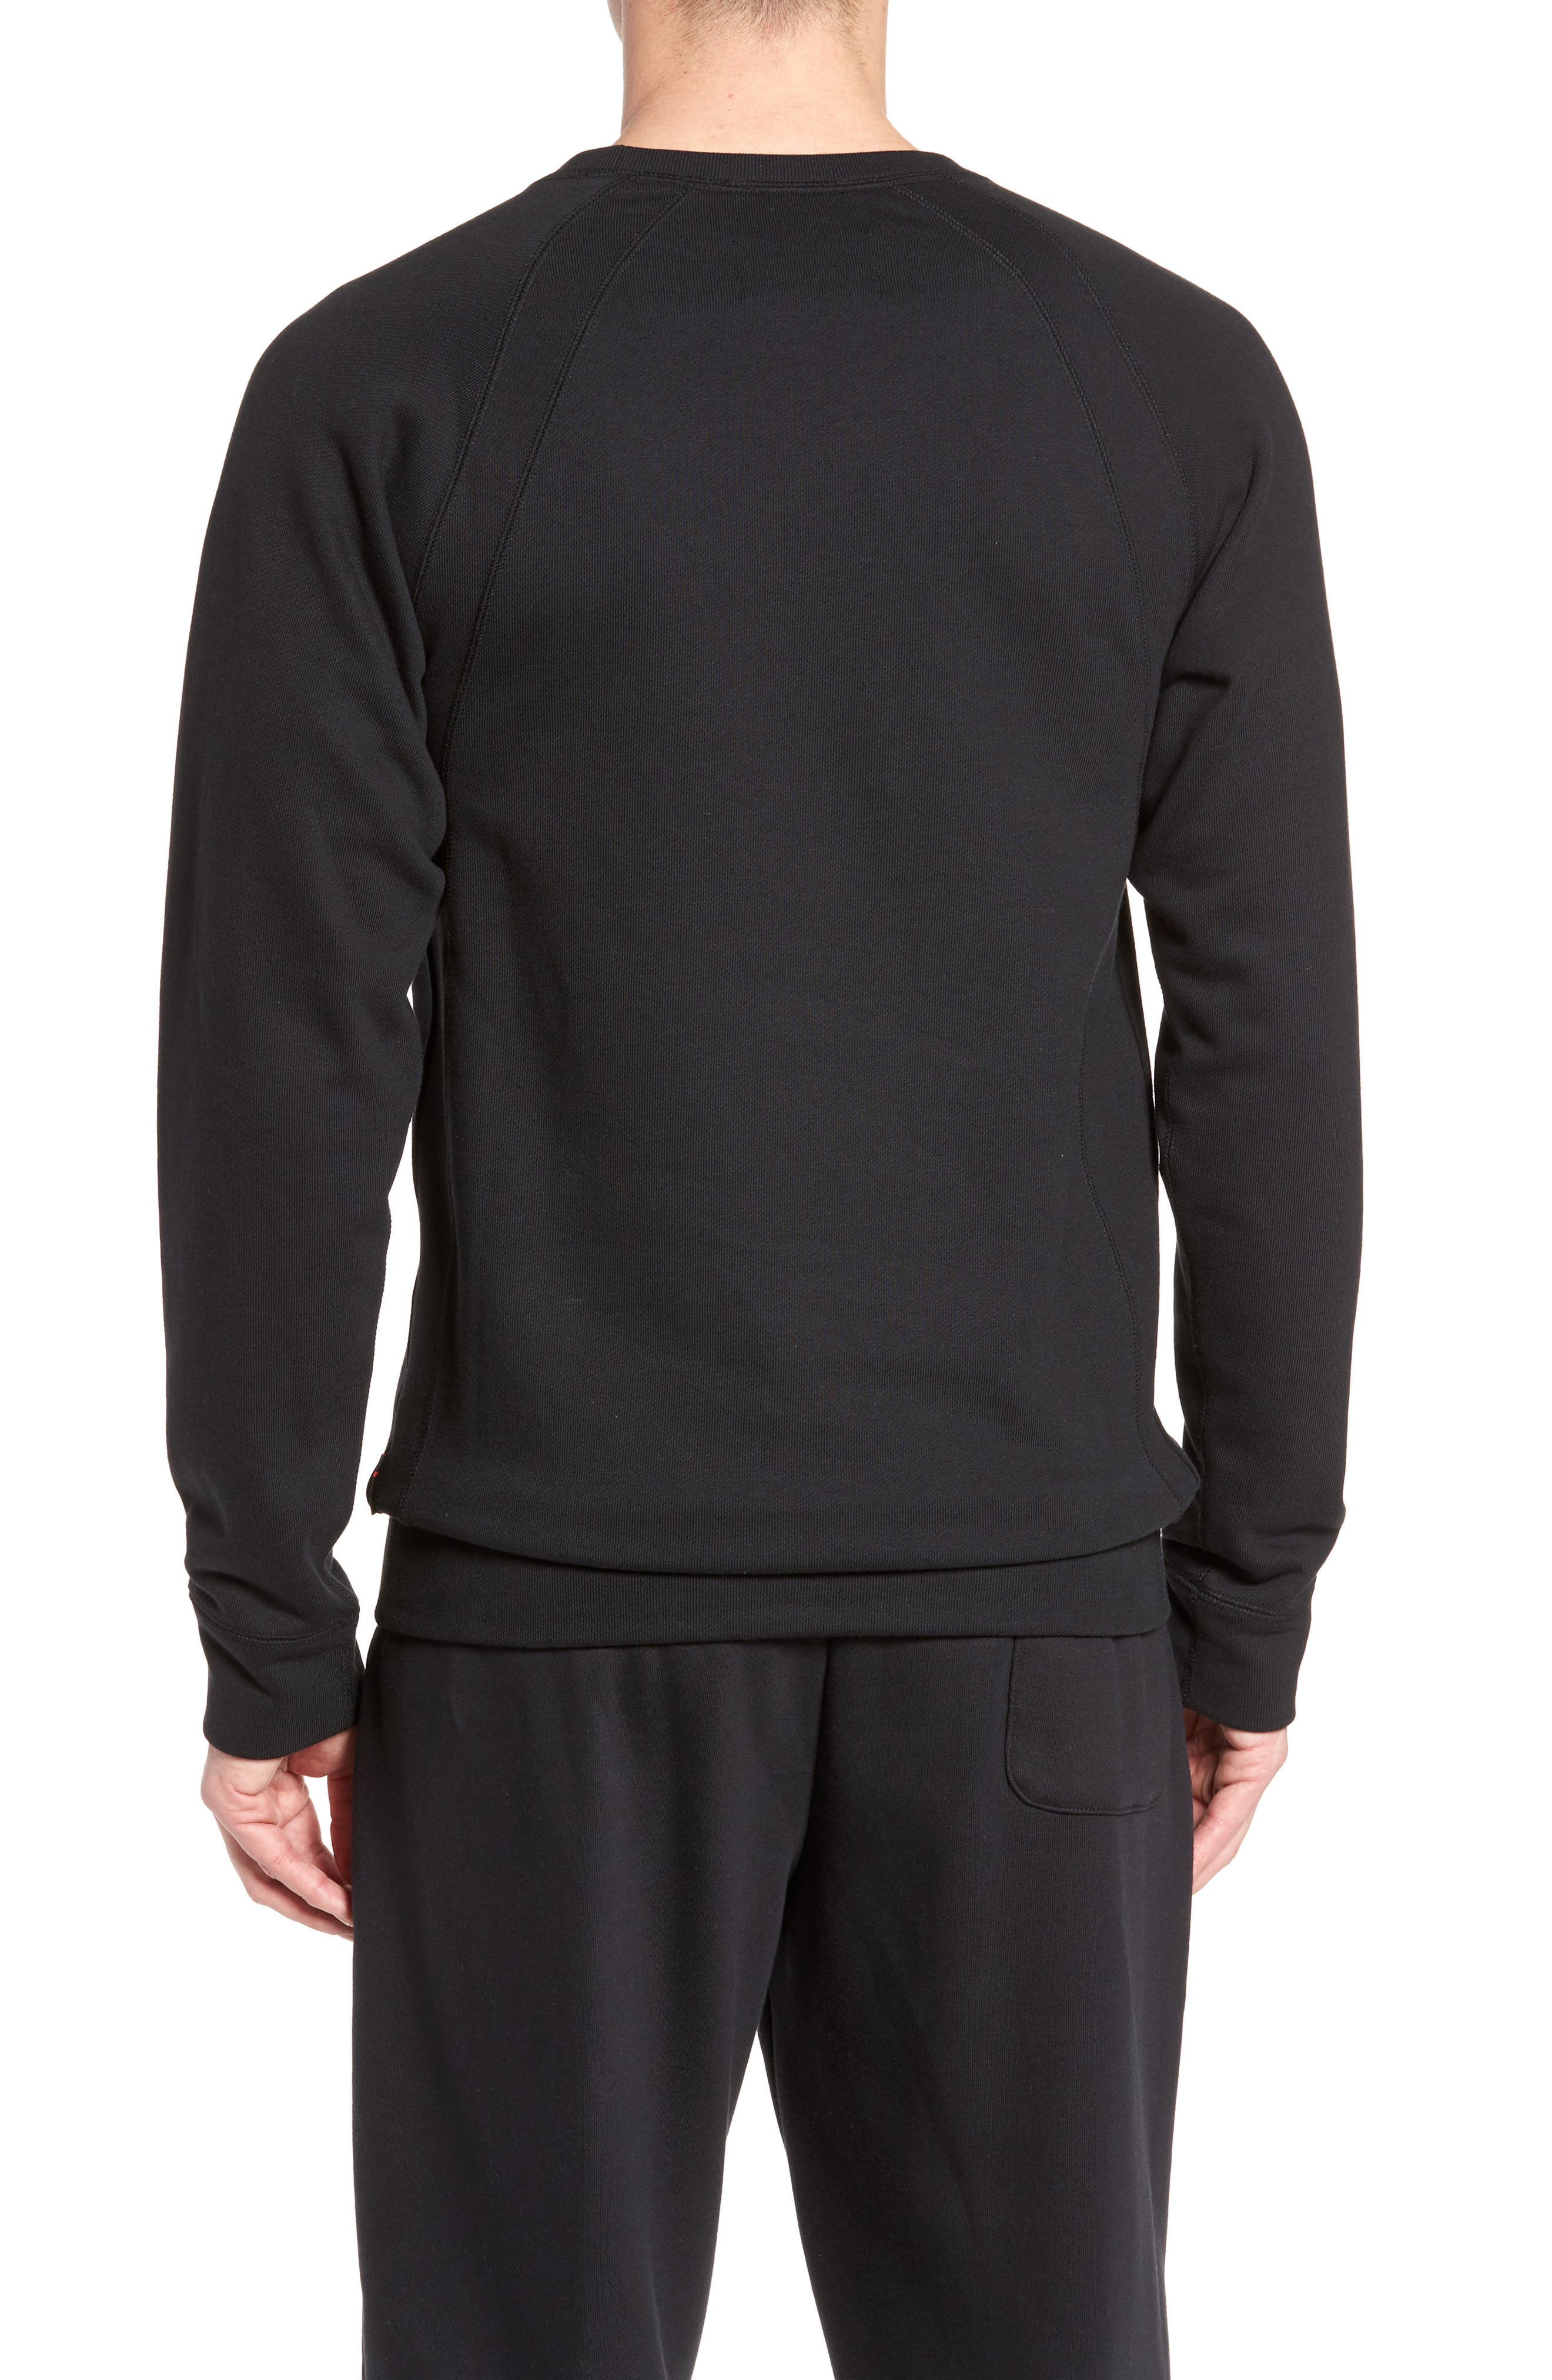 Jordan Sportswear Wings Pullover,                             Alternate thumbnail 2, color,                             Black/ Black